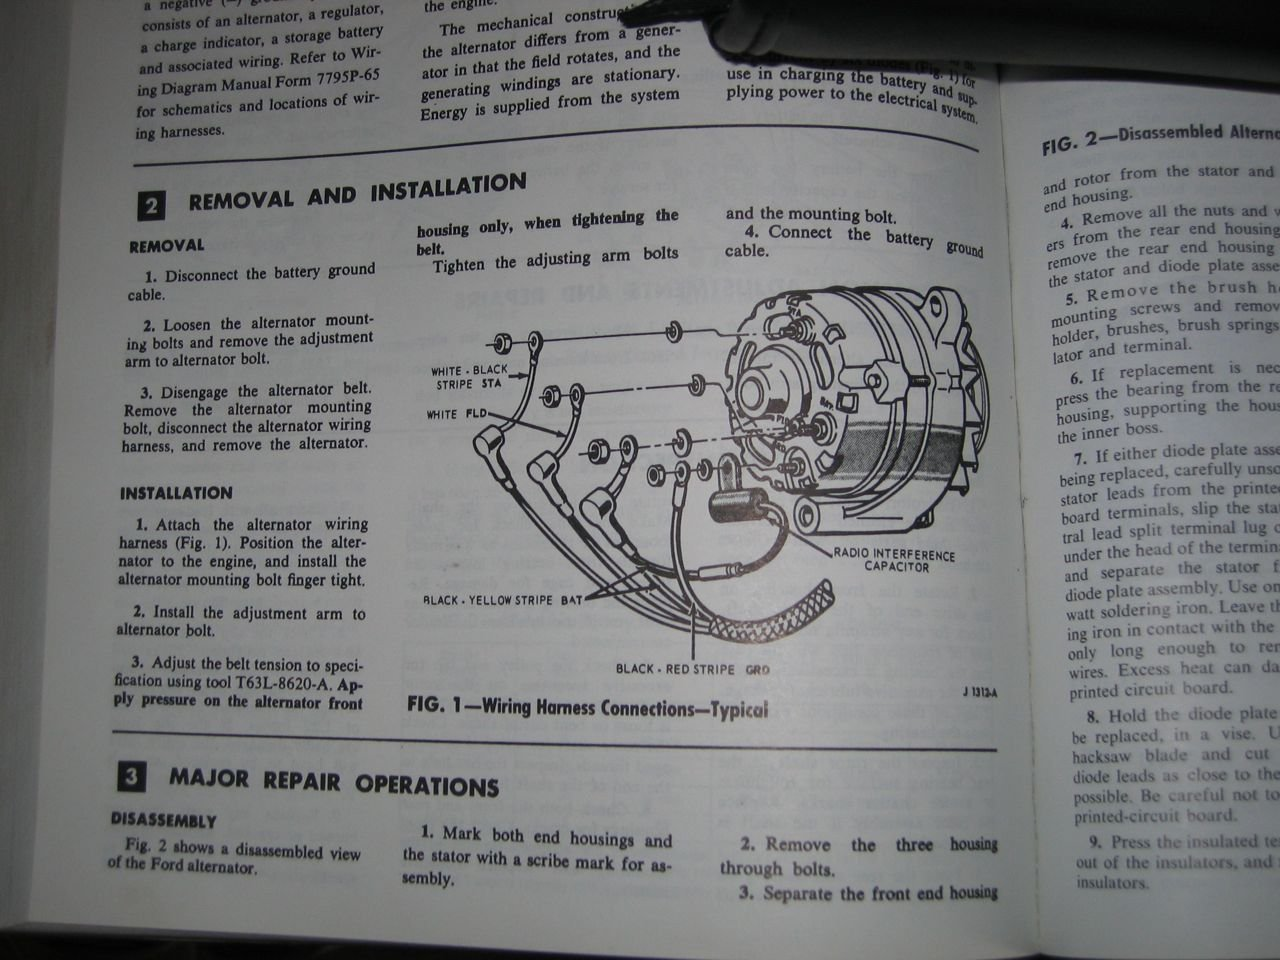 1966 Mustang Alternator Wiring | Ford Mustang Forum  All Ford Mustangs